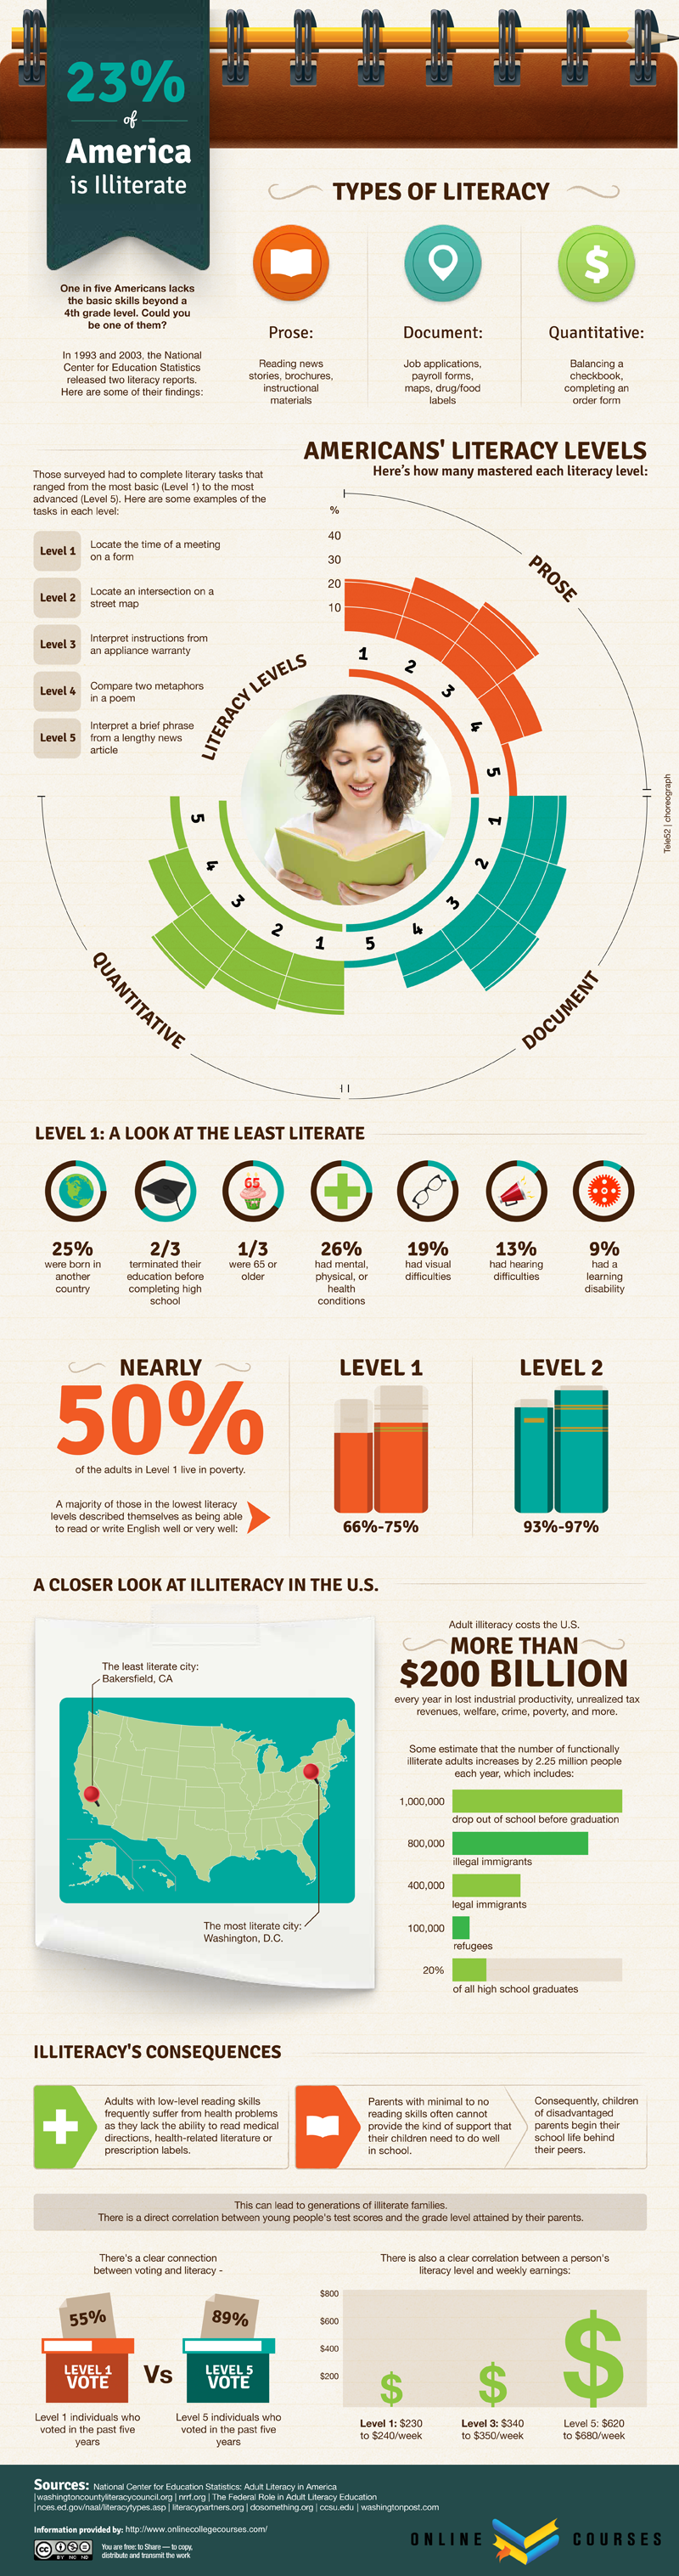 How Does Illiteracy Affect Job Seekers? [INFOGRAPHIC]